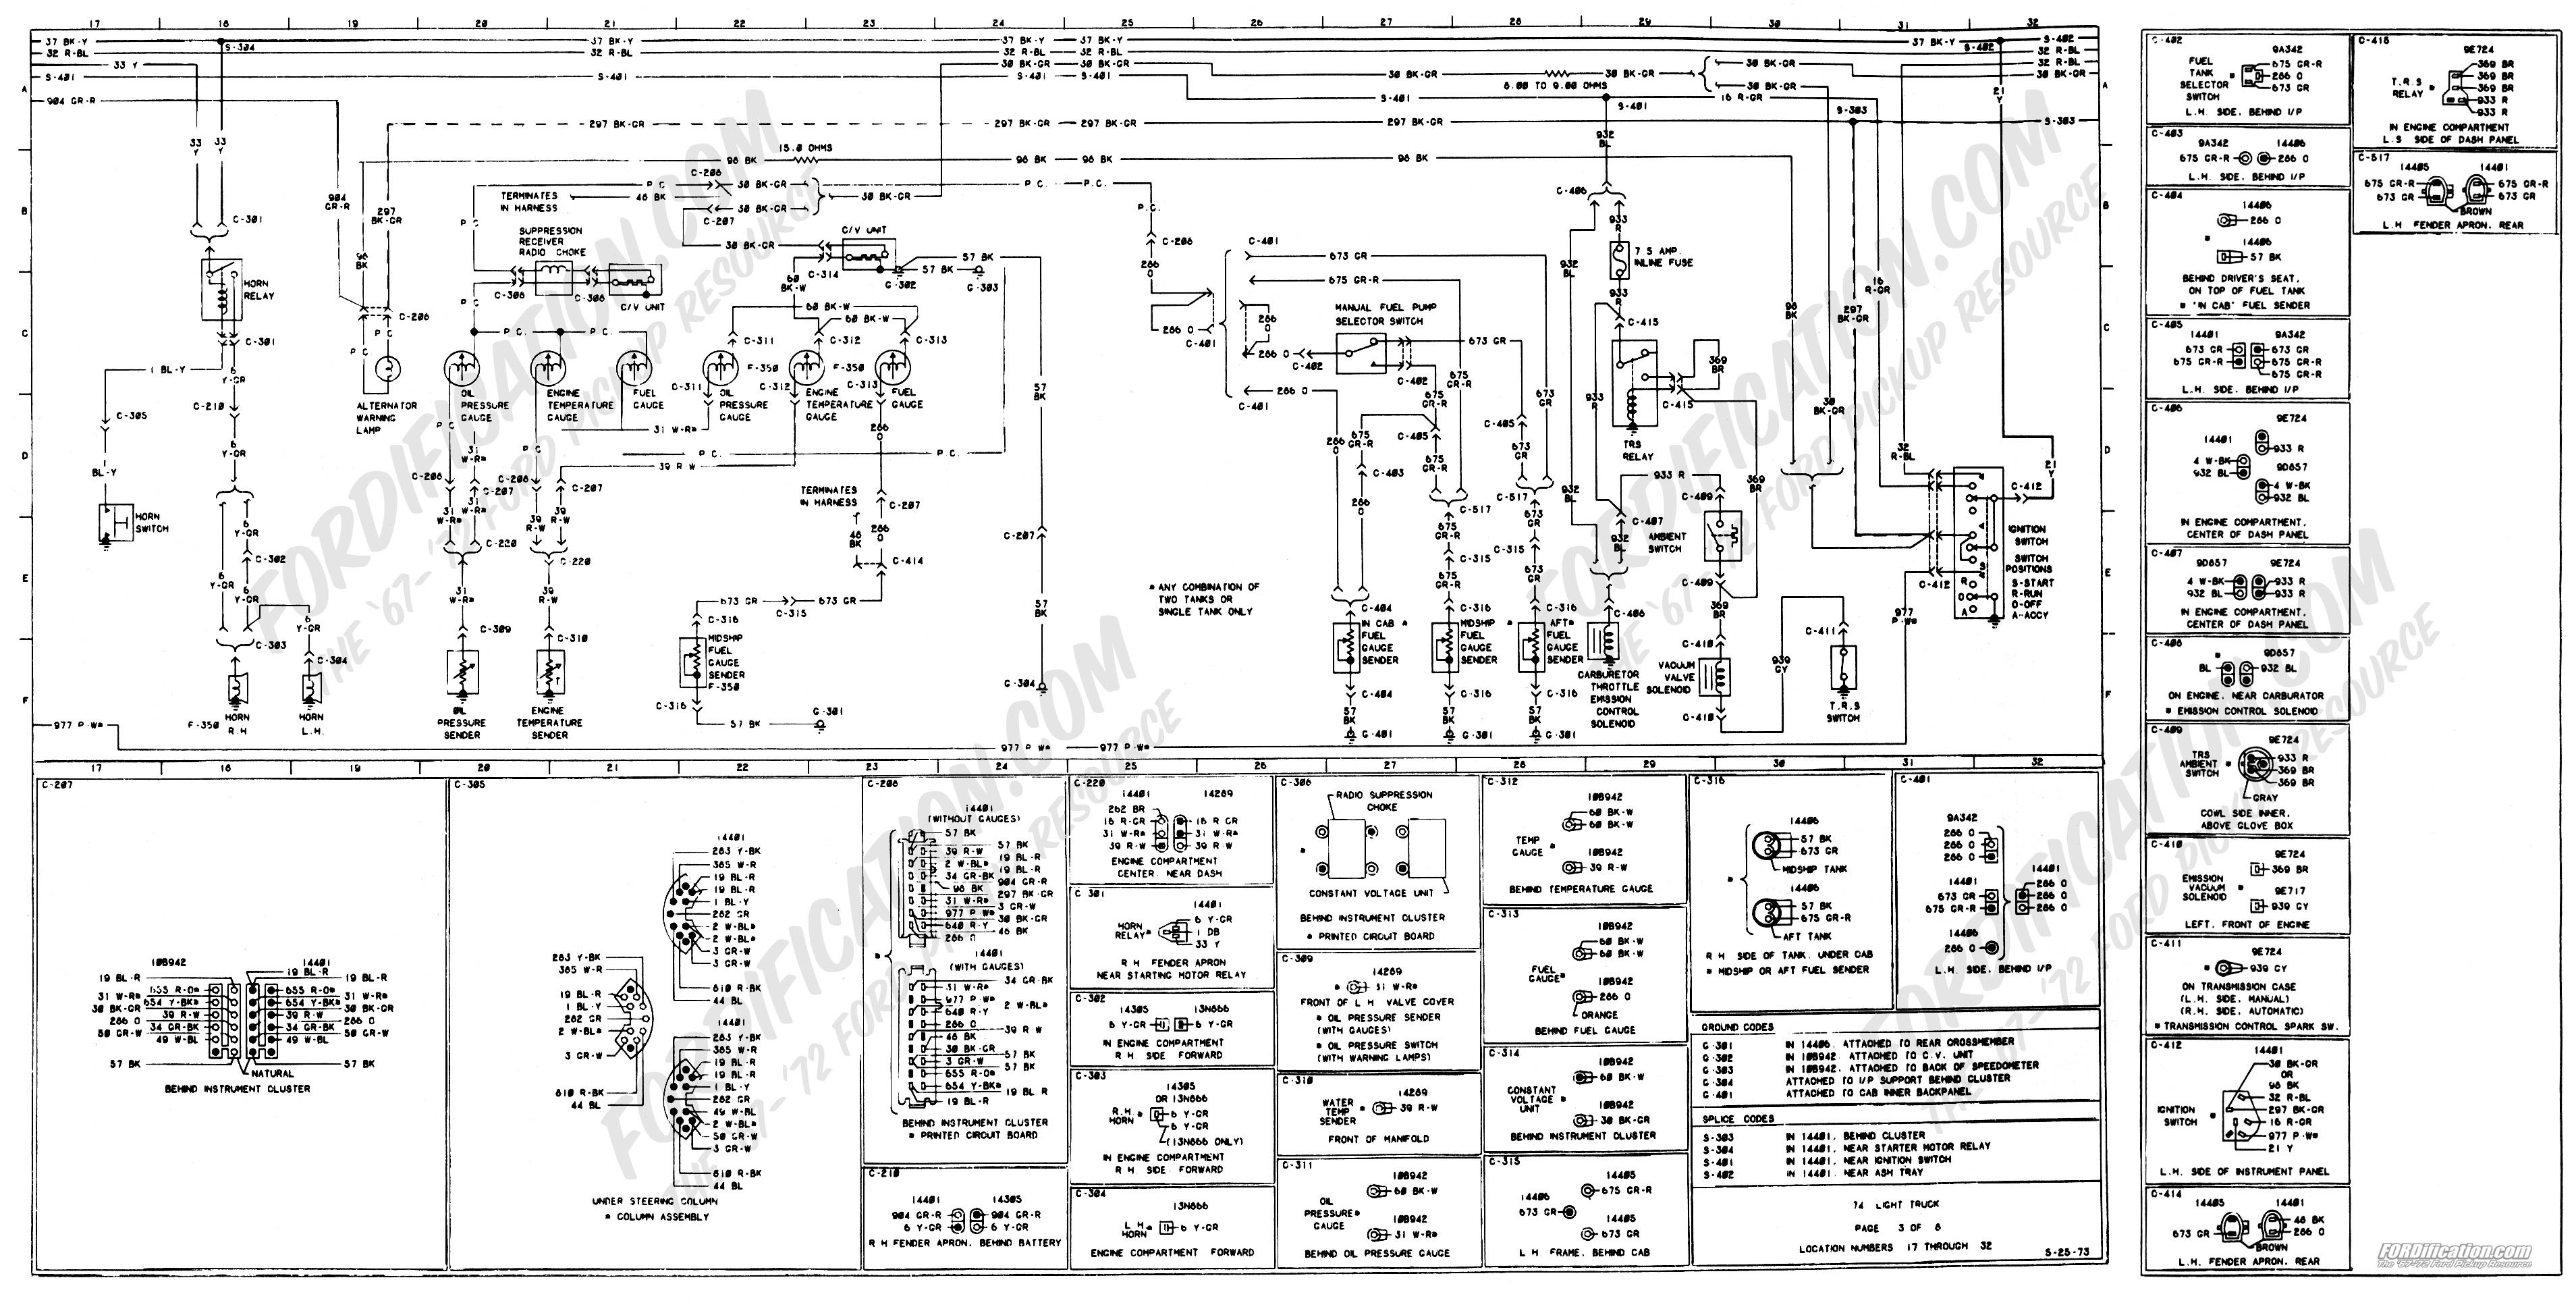 Ford F150 V6 Engine Diagram Wiring Library 2000 1973 1979 Truck Diagrams Schematics Fordification Of